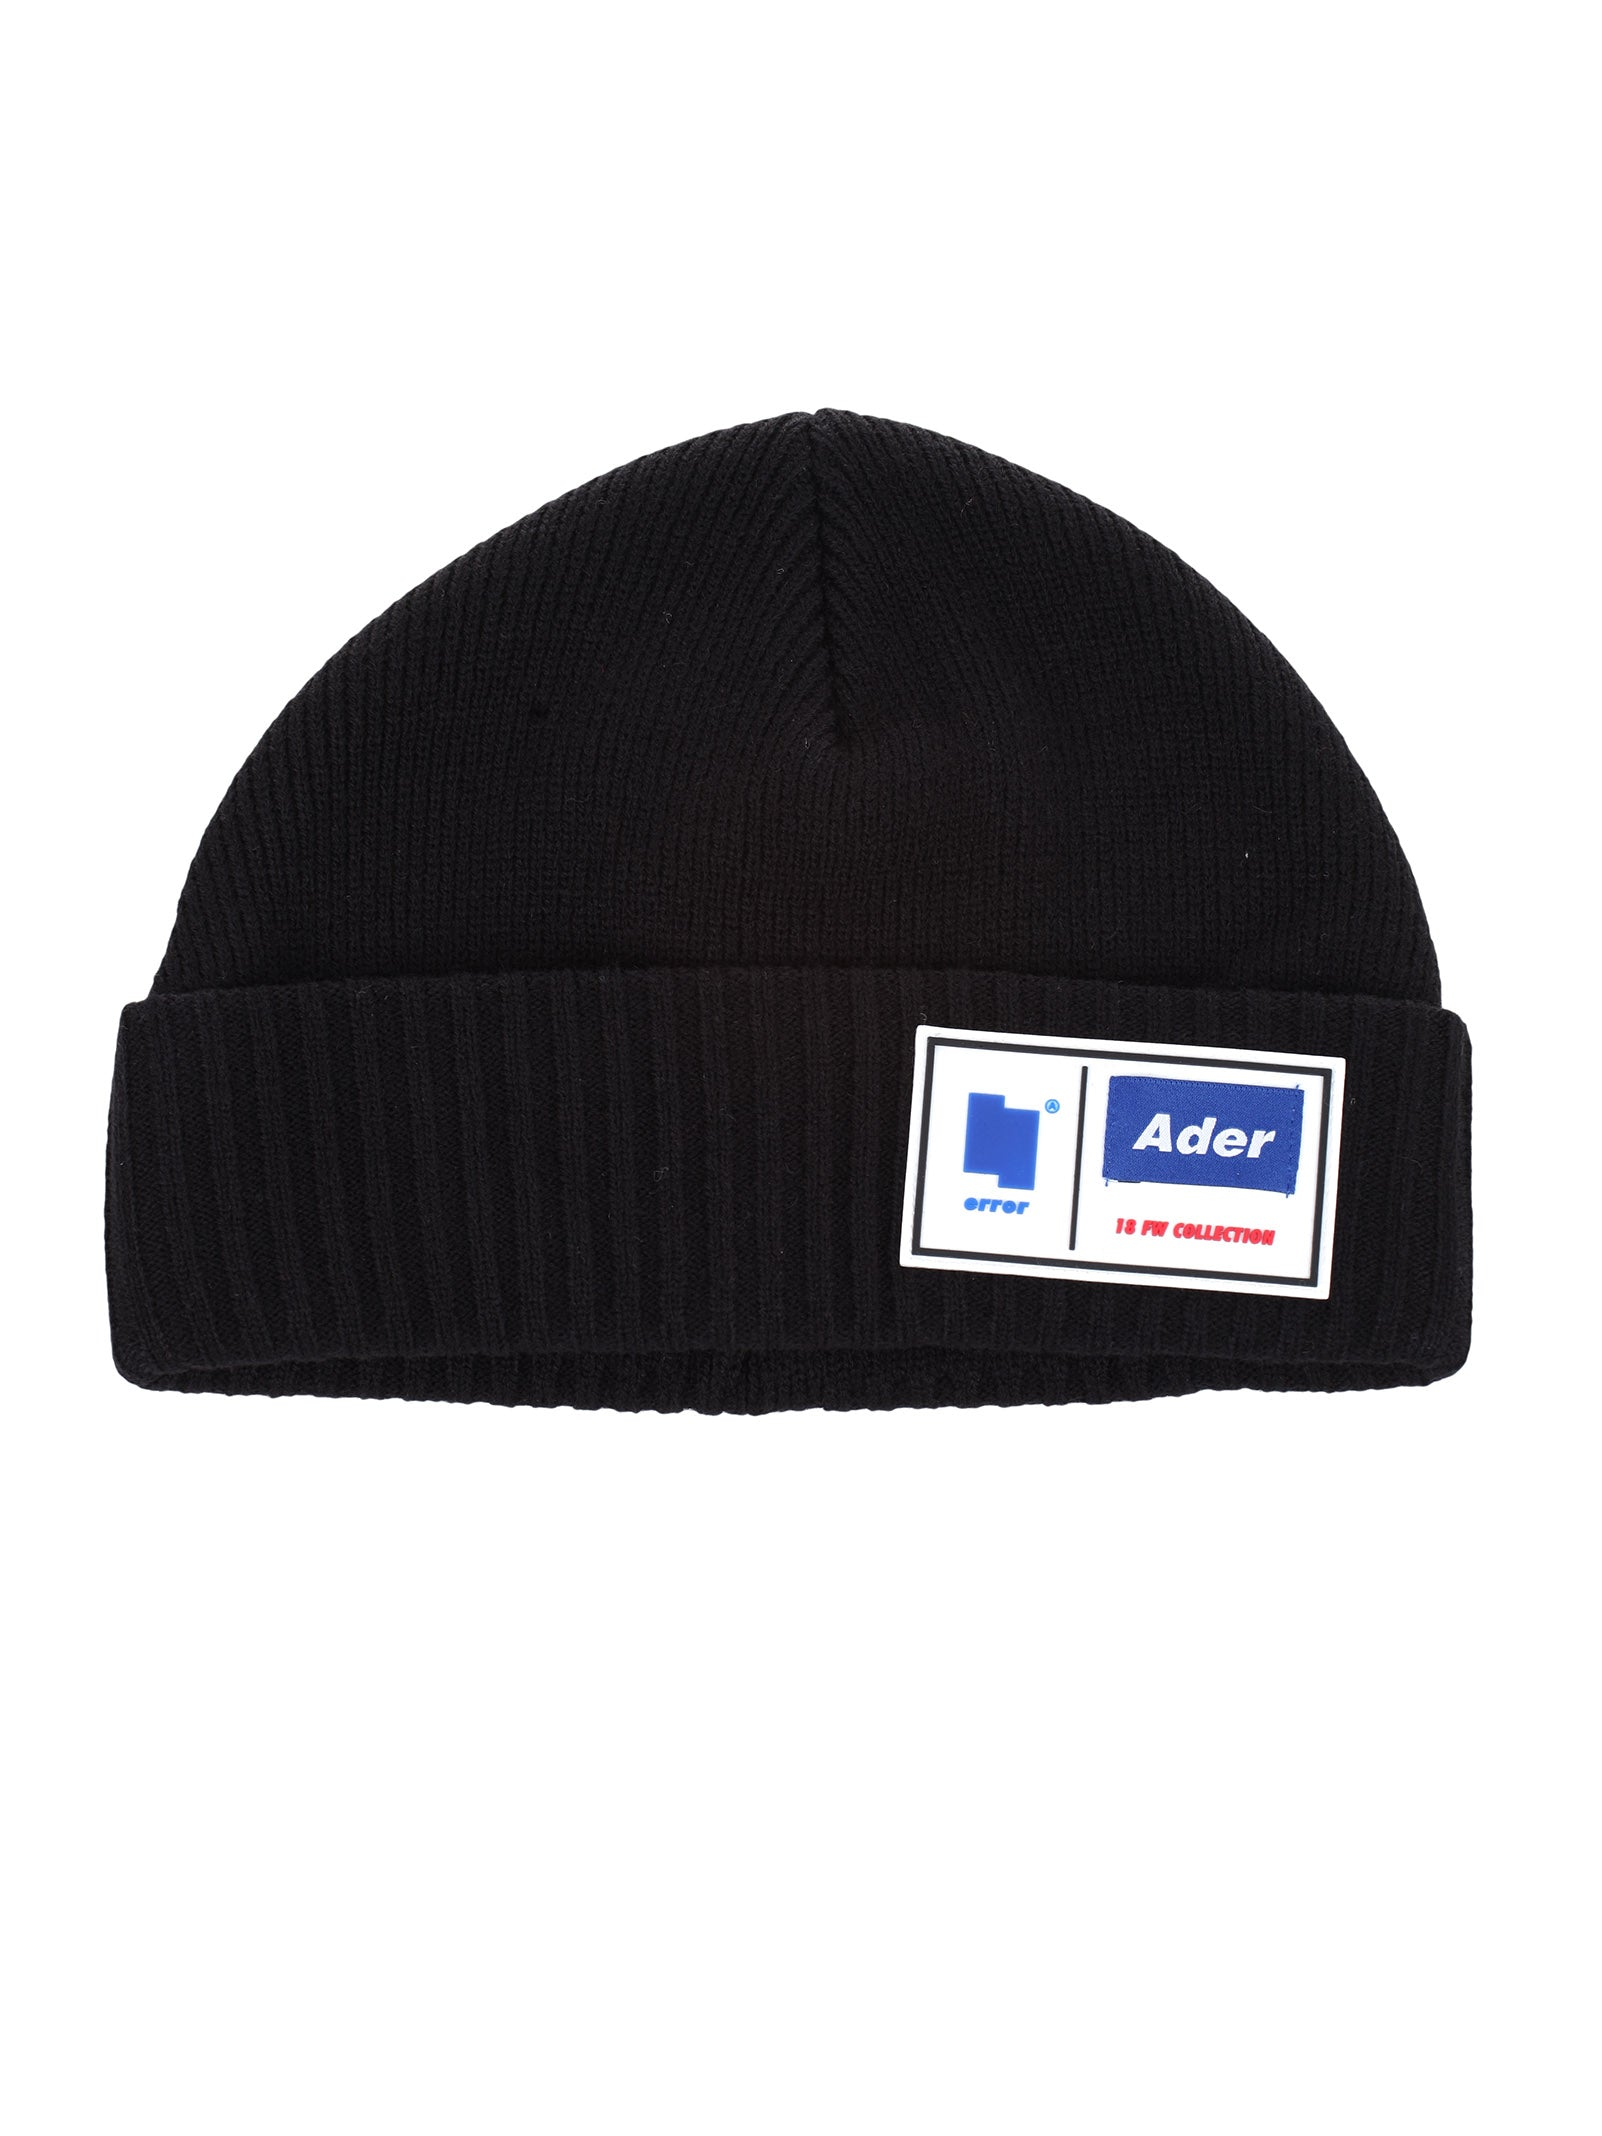 ADER ERROR RIBBED LOGO BEANIE HAT